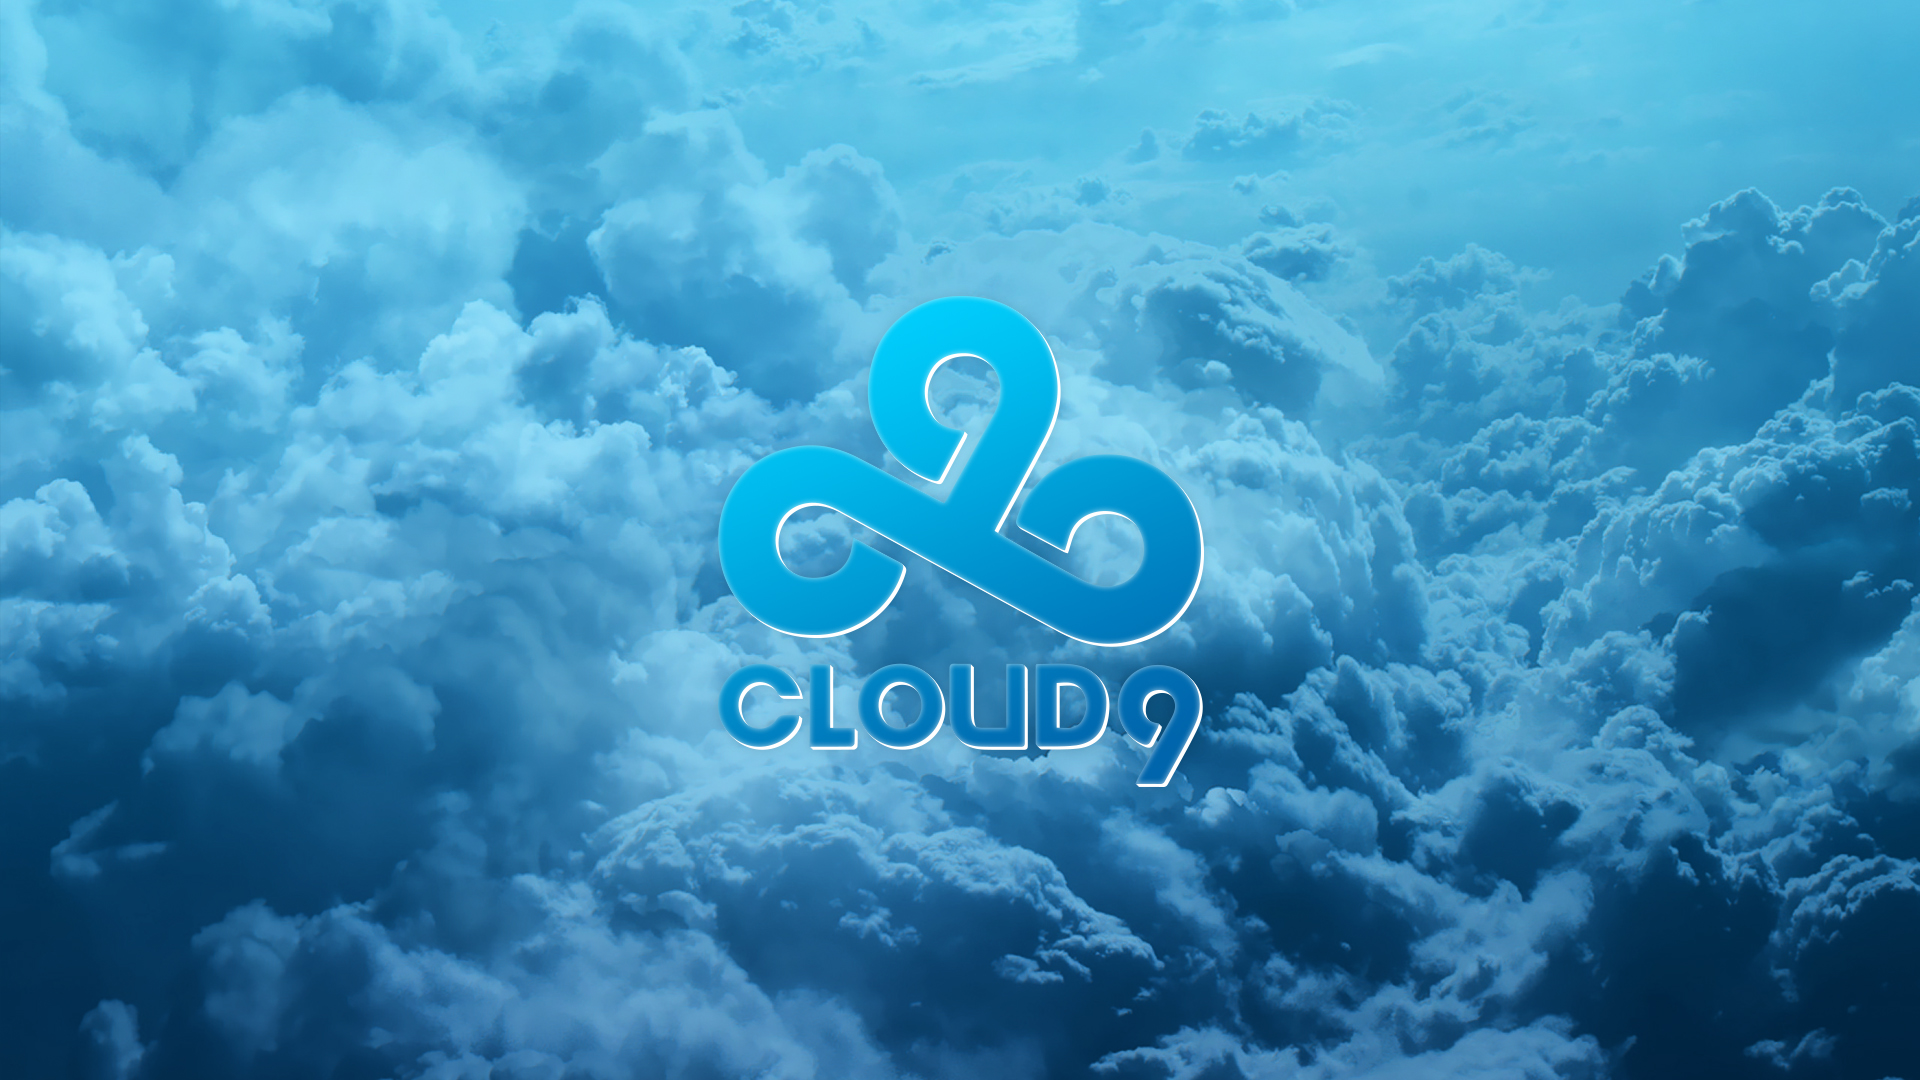 c9 clouds csgo wallpapers and backgrounds